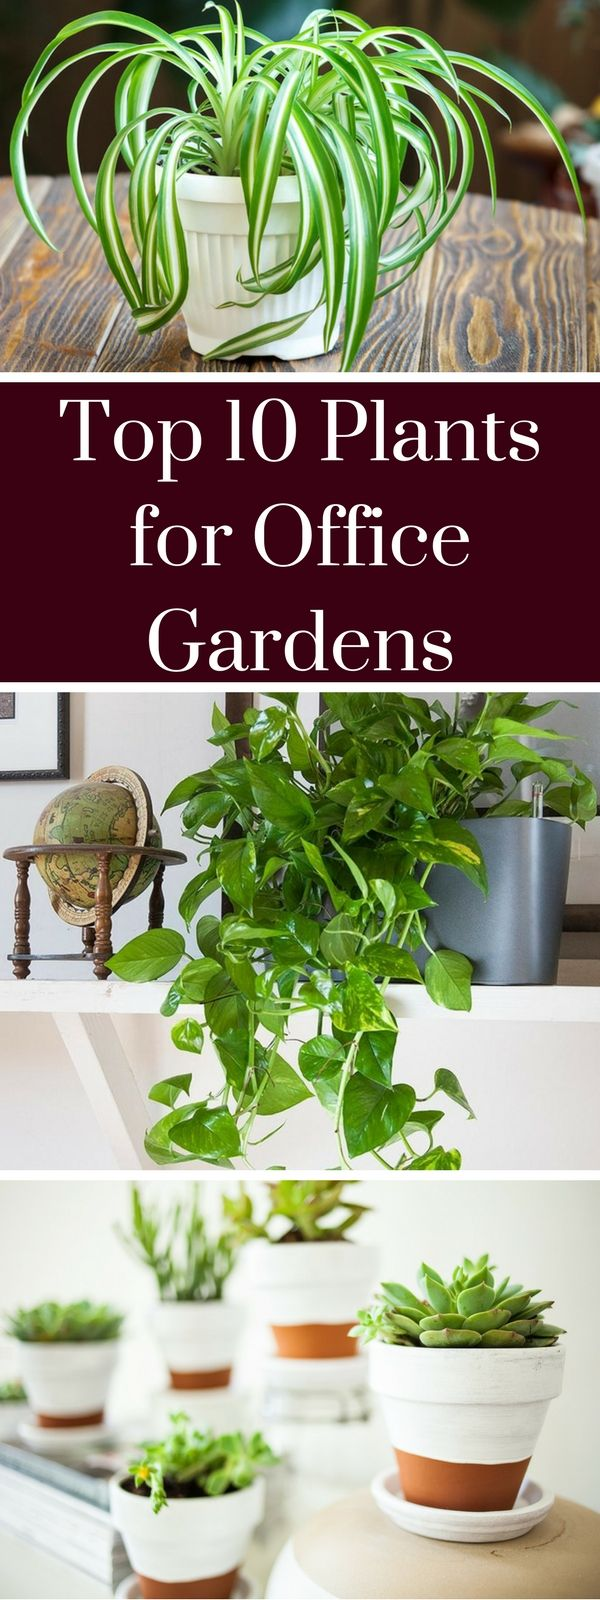 Top 10 Plants for Office Gardens